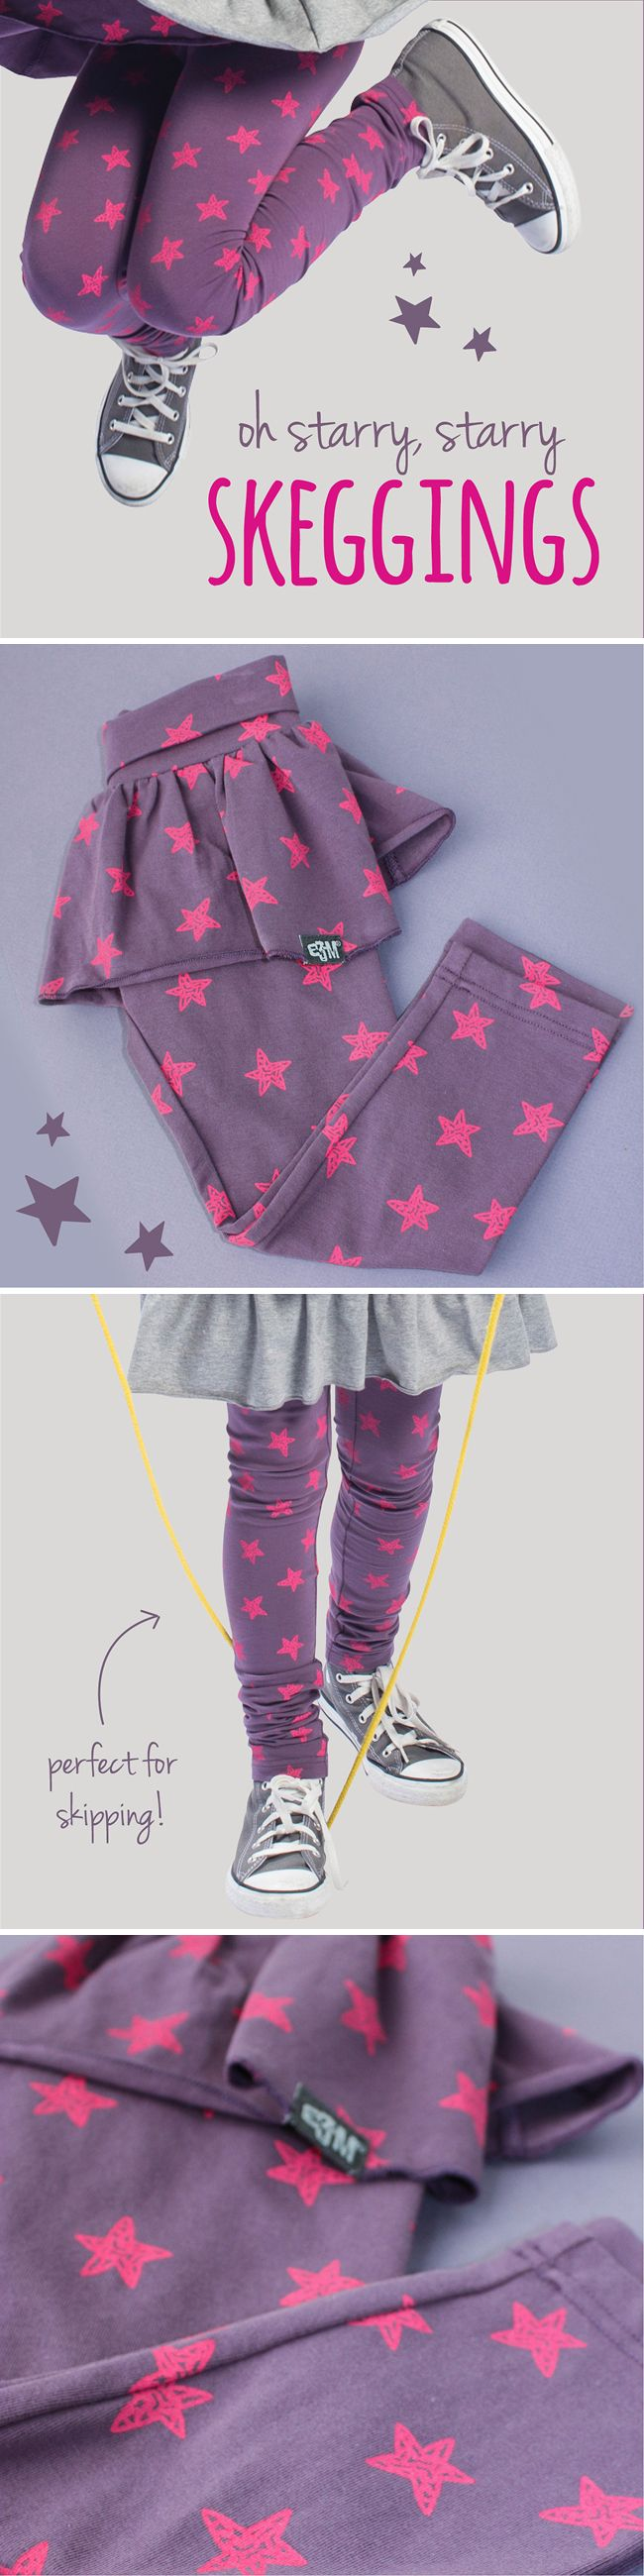 This signature style in violet and neon has us all starry eyed  *_*